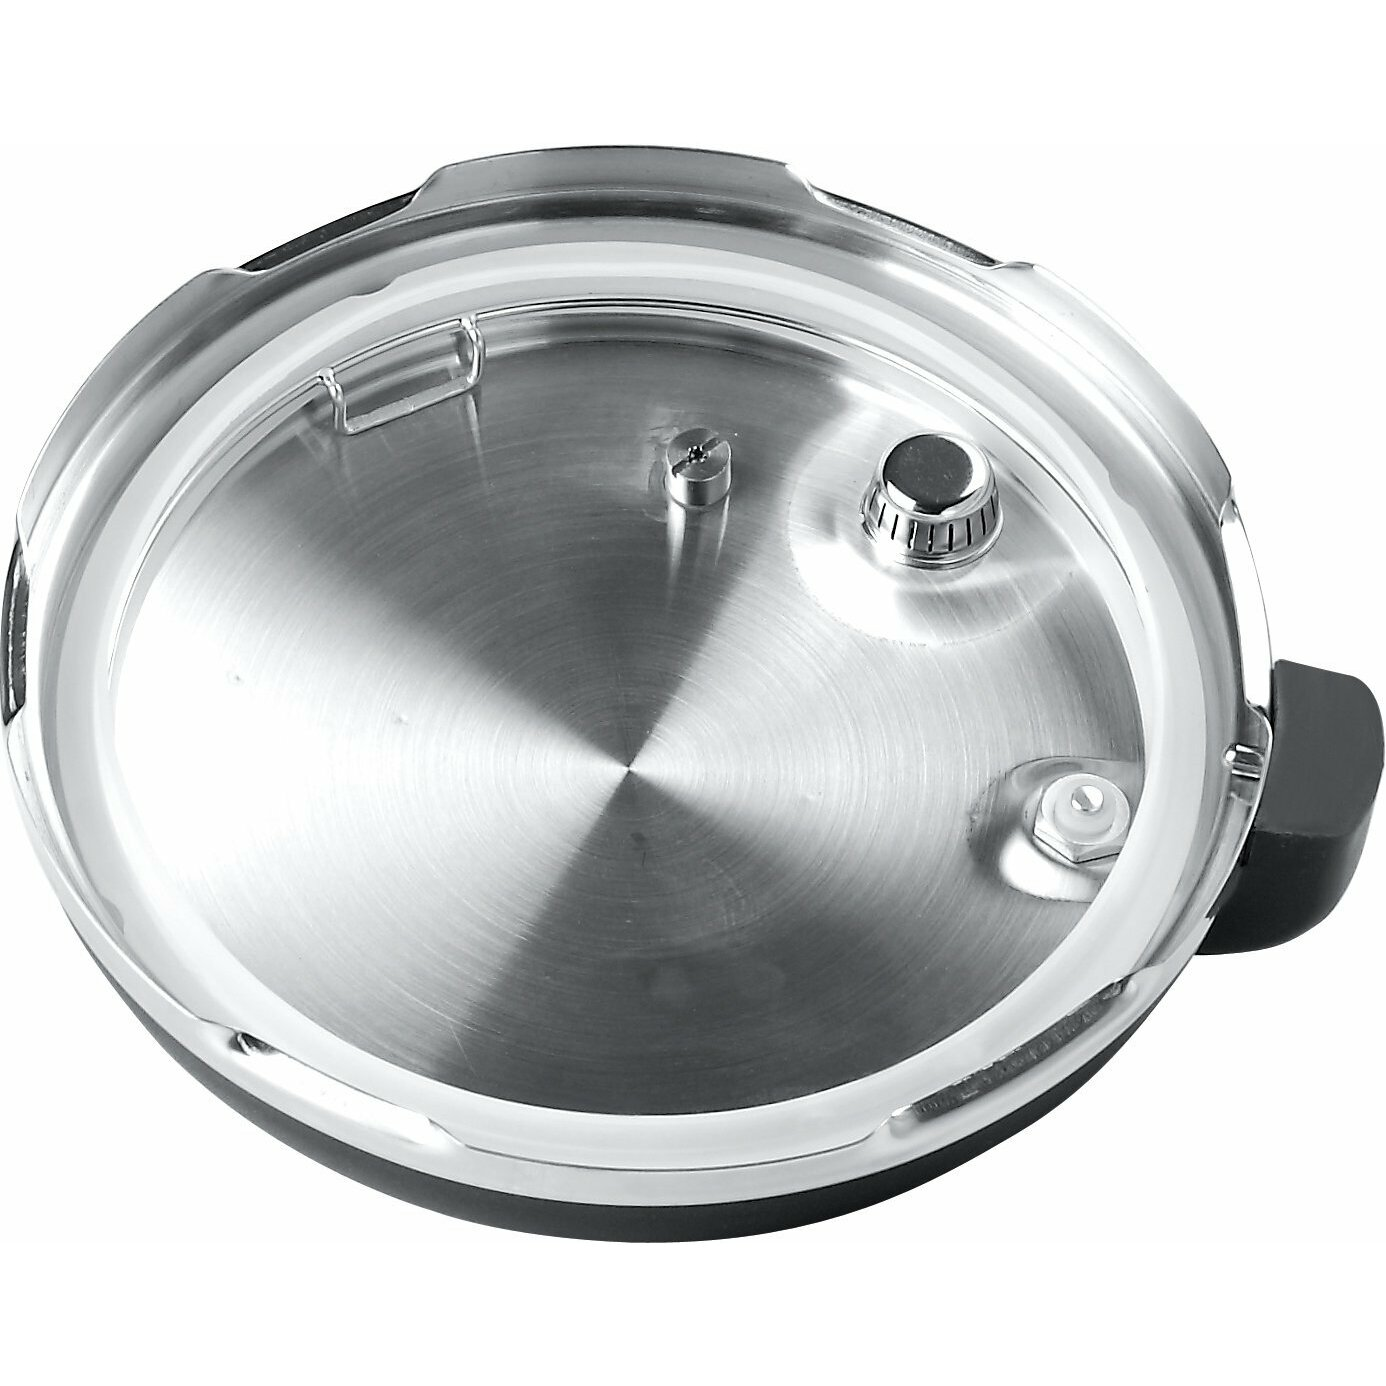 Gowise usa 4 quart pressure cooker reviews wayfair for Gowise usa